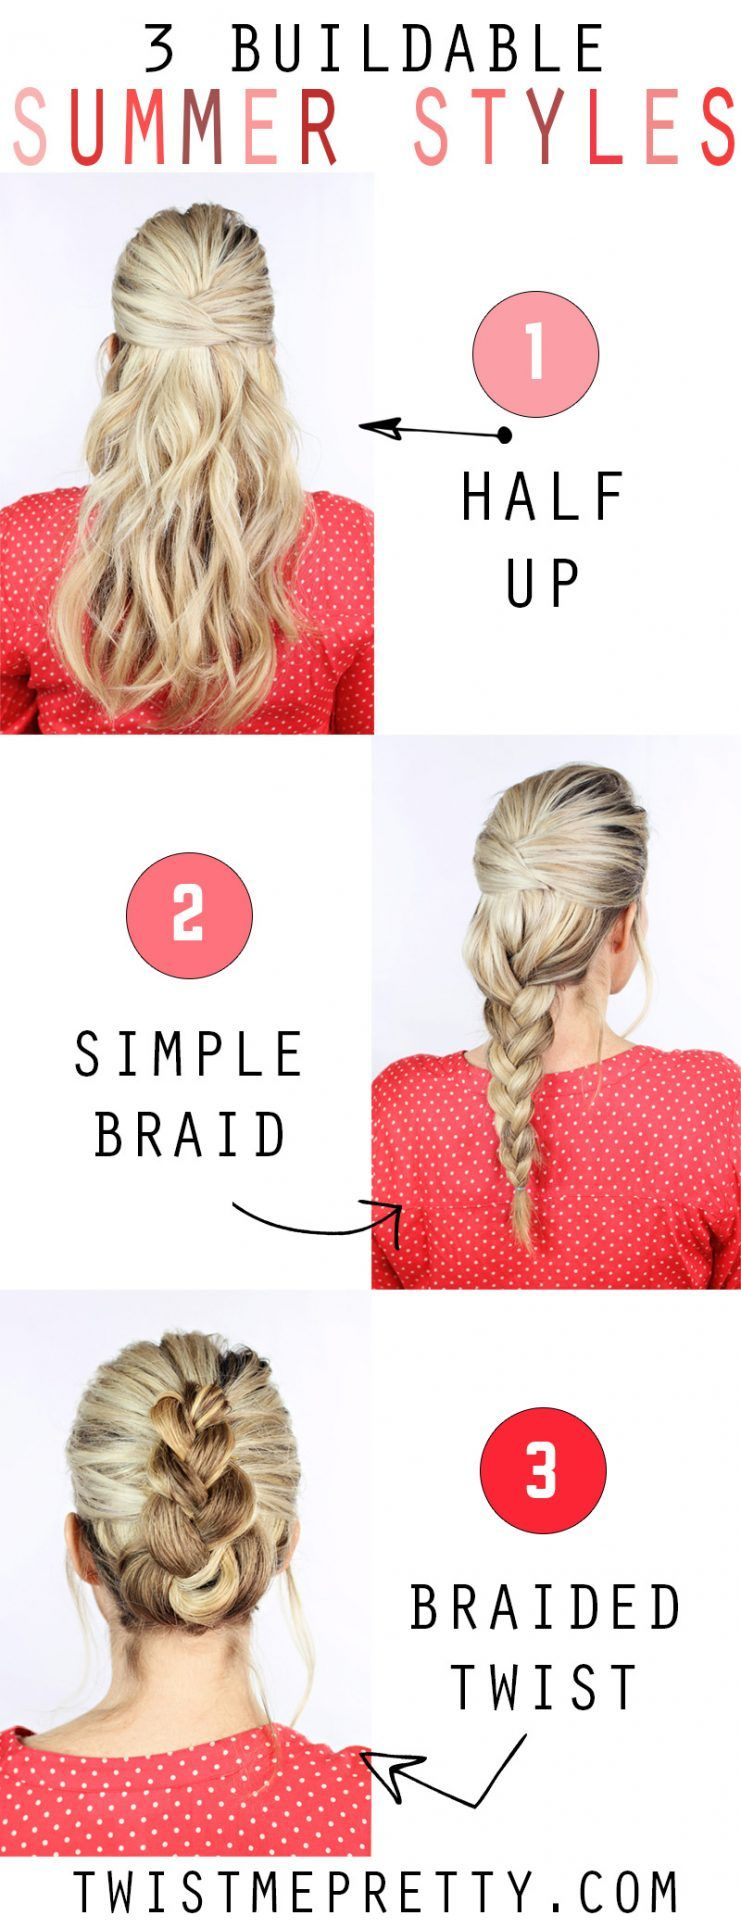 Summer hair hacks skip to my lou hair dous pinterest hair